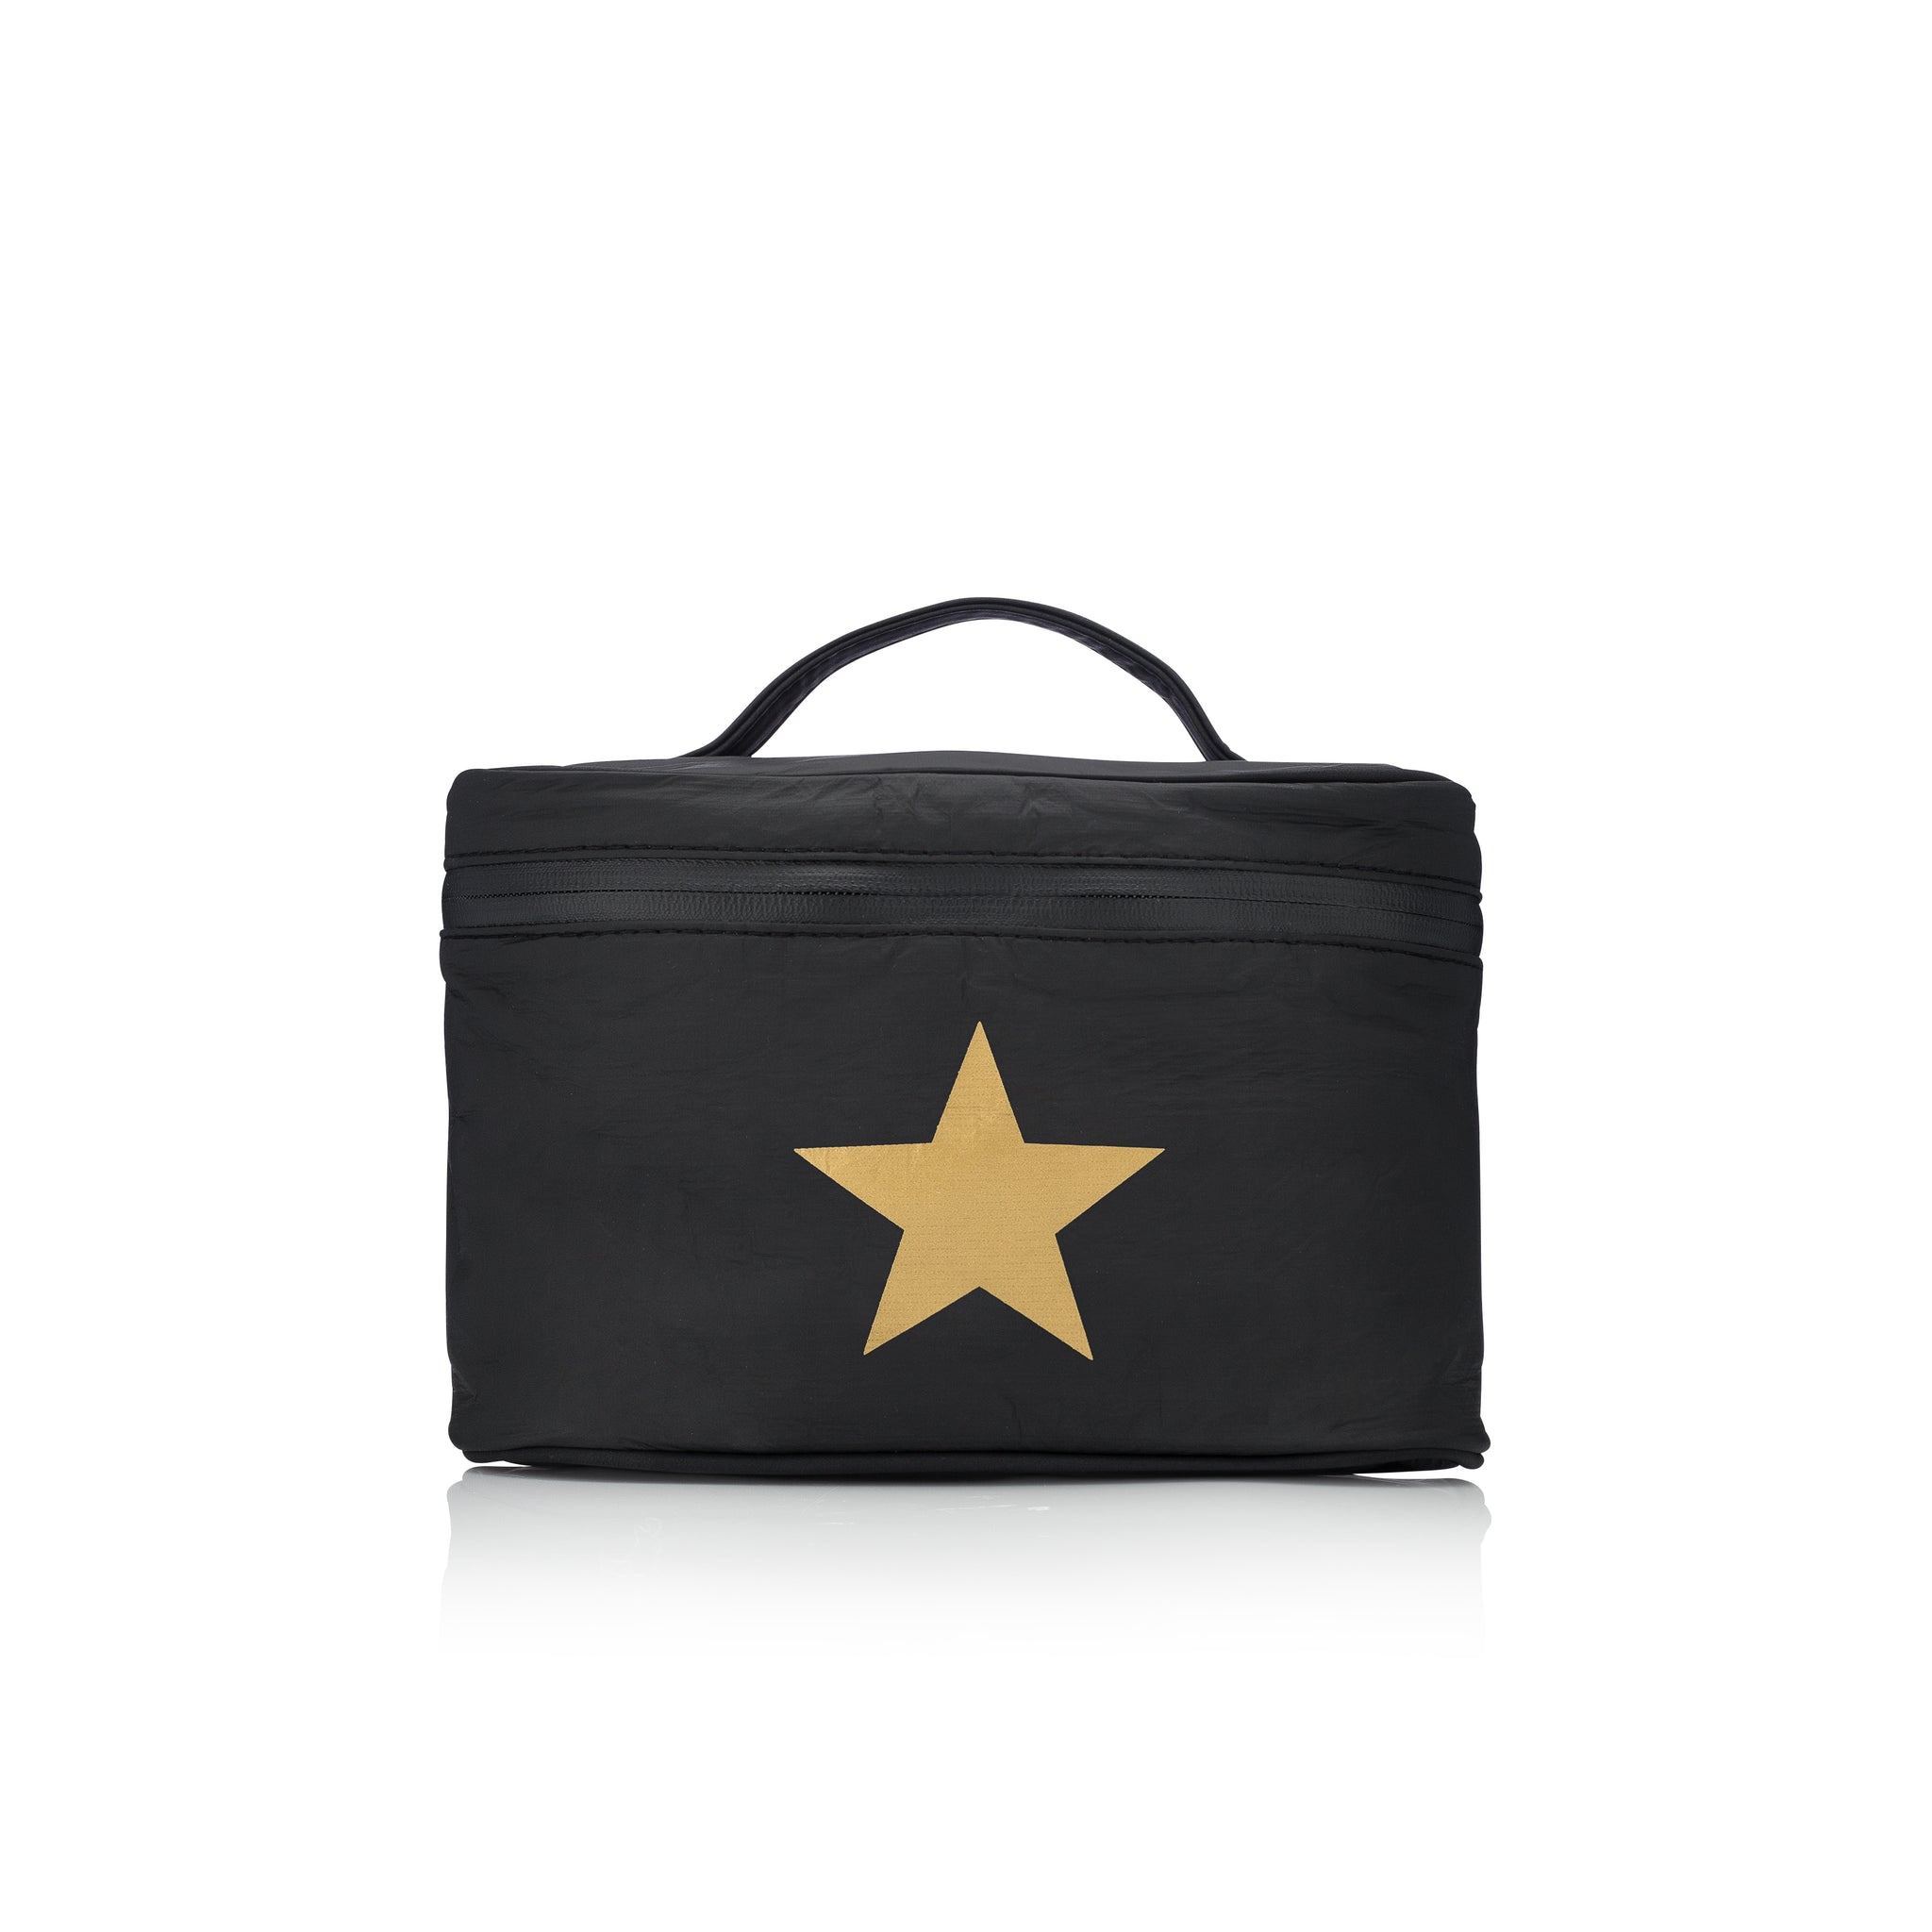 Last One! Cosmetic Case - Lunch Box - Black with Gold Star